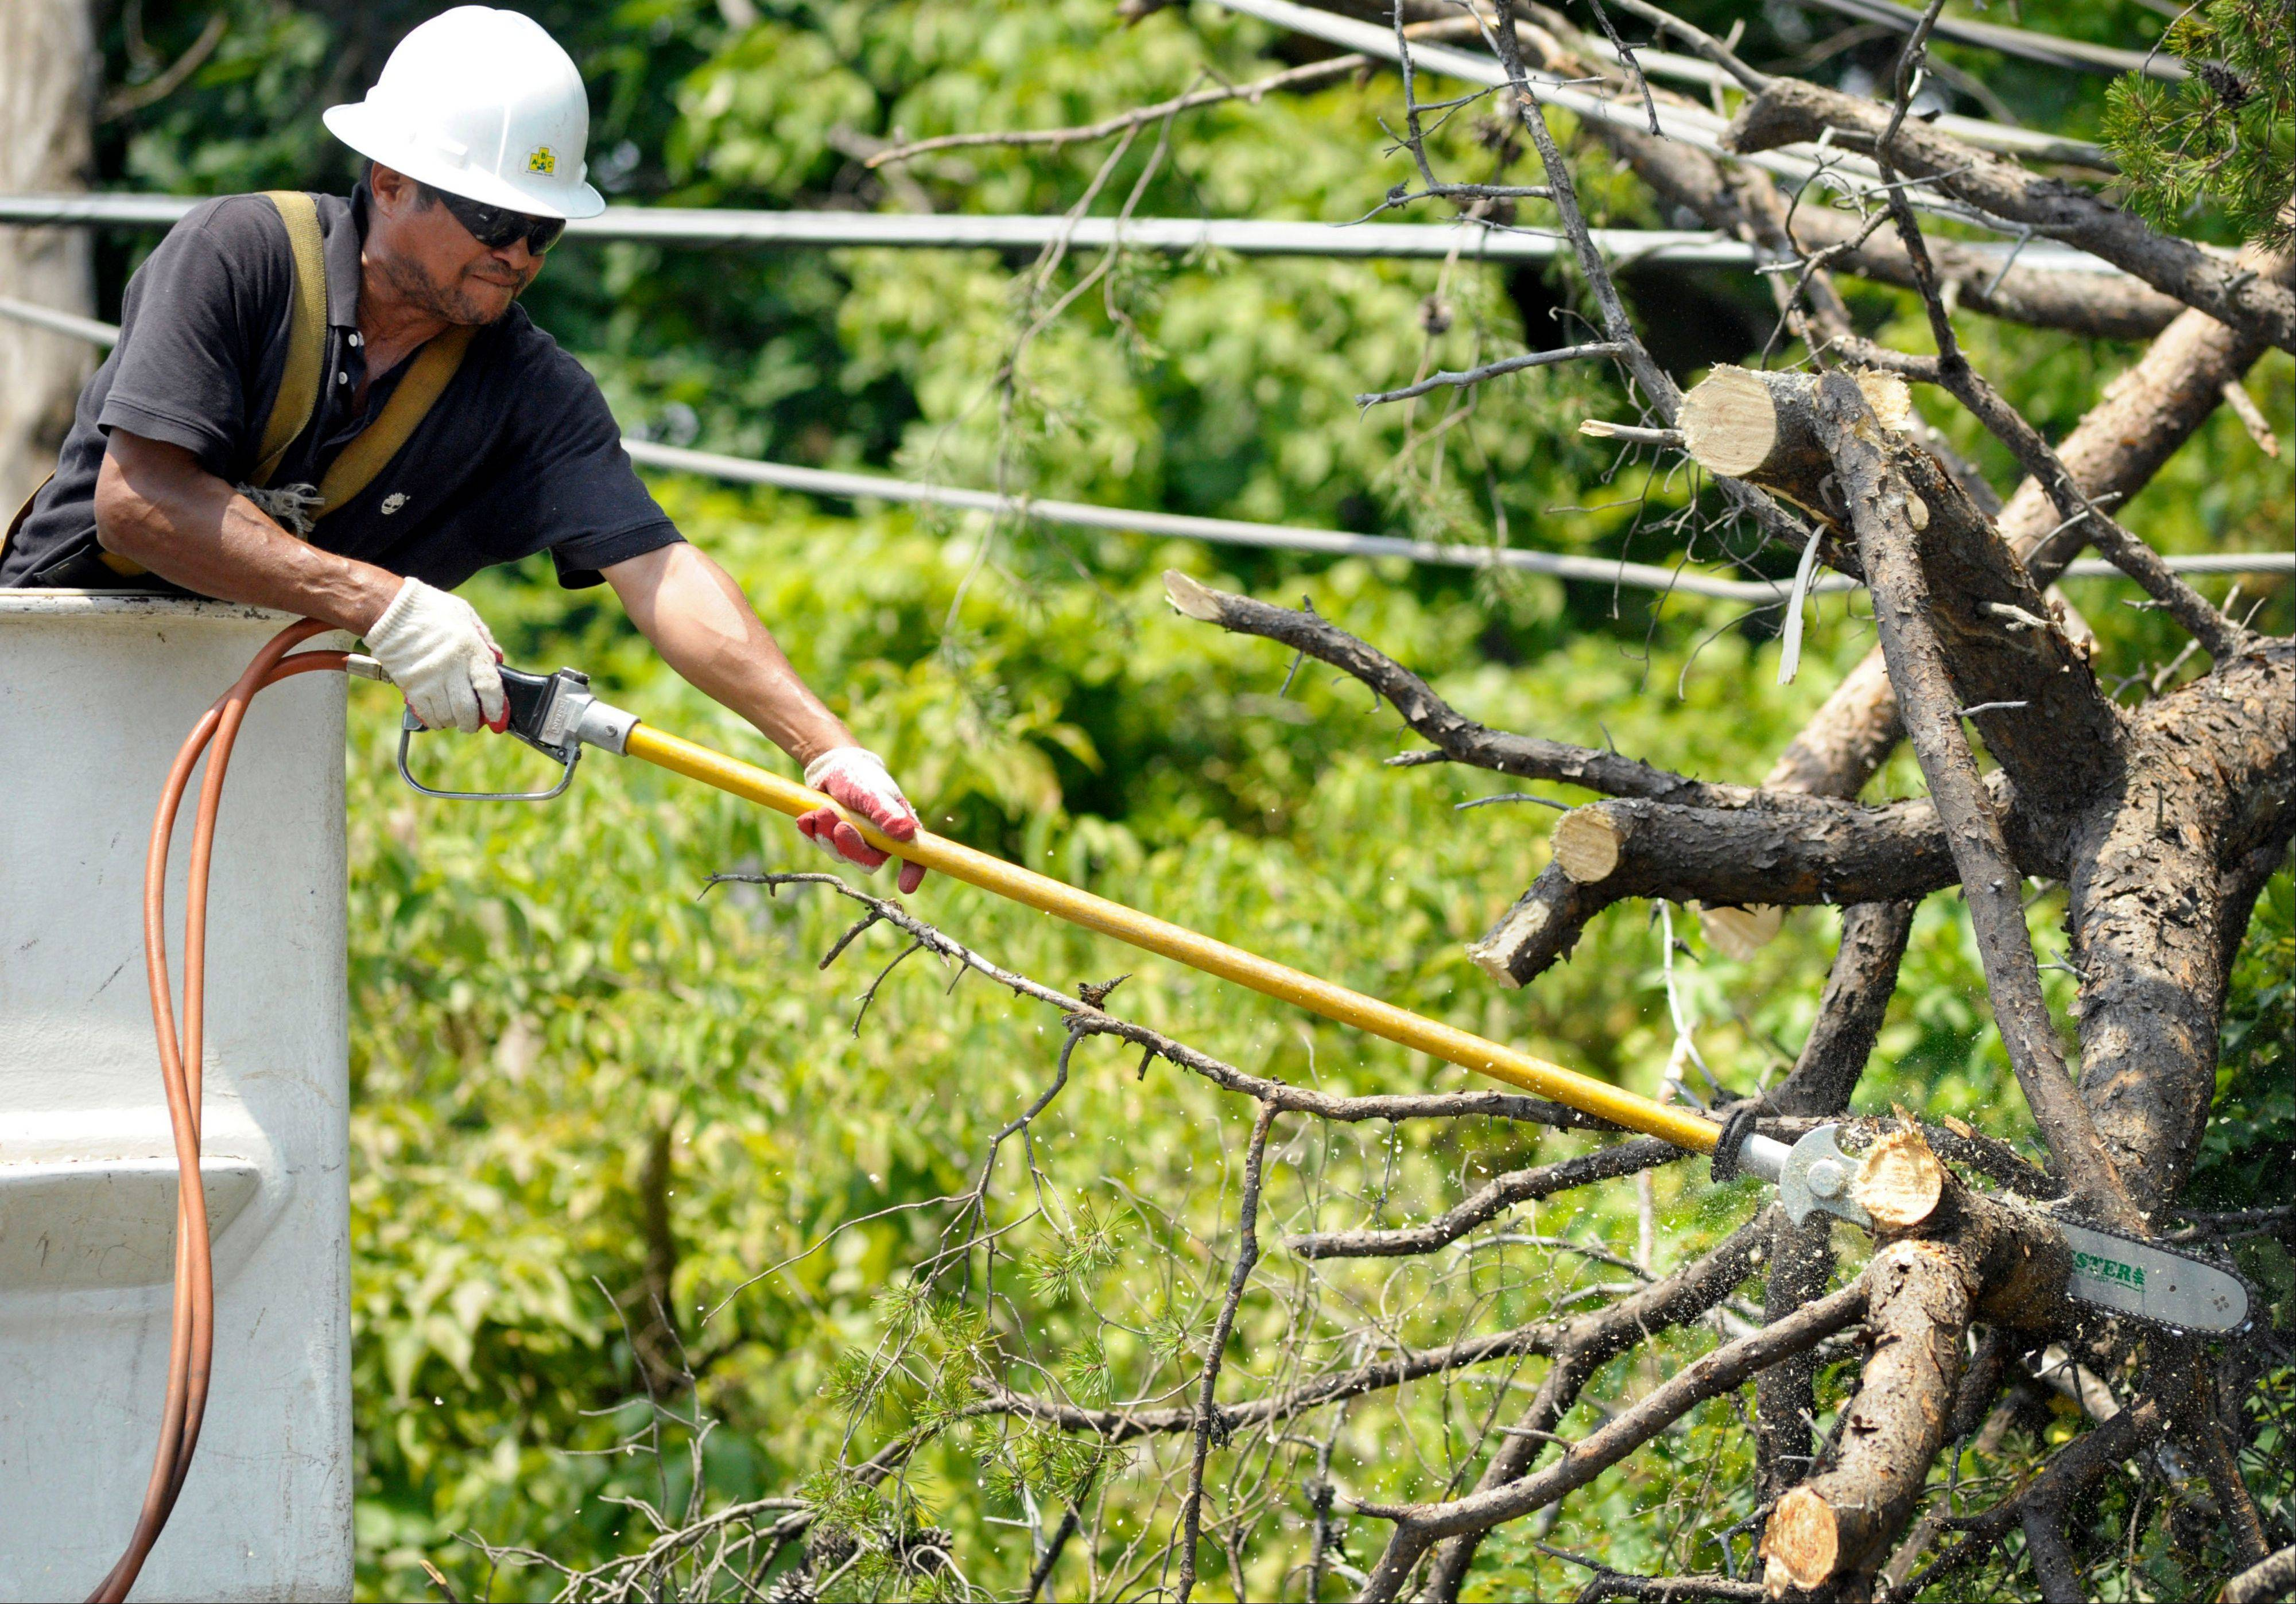 A utility worker clears a downed tree from power lines.